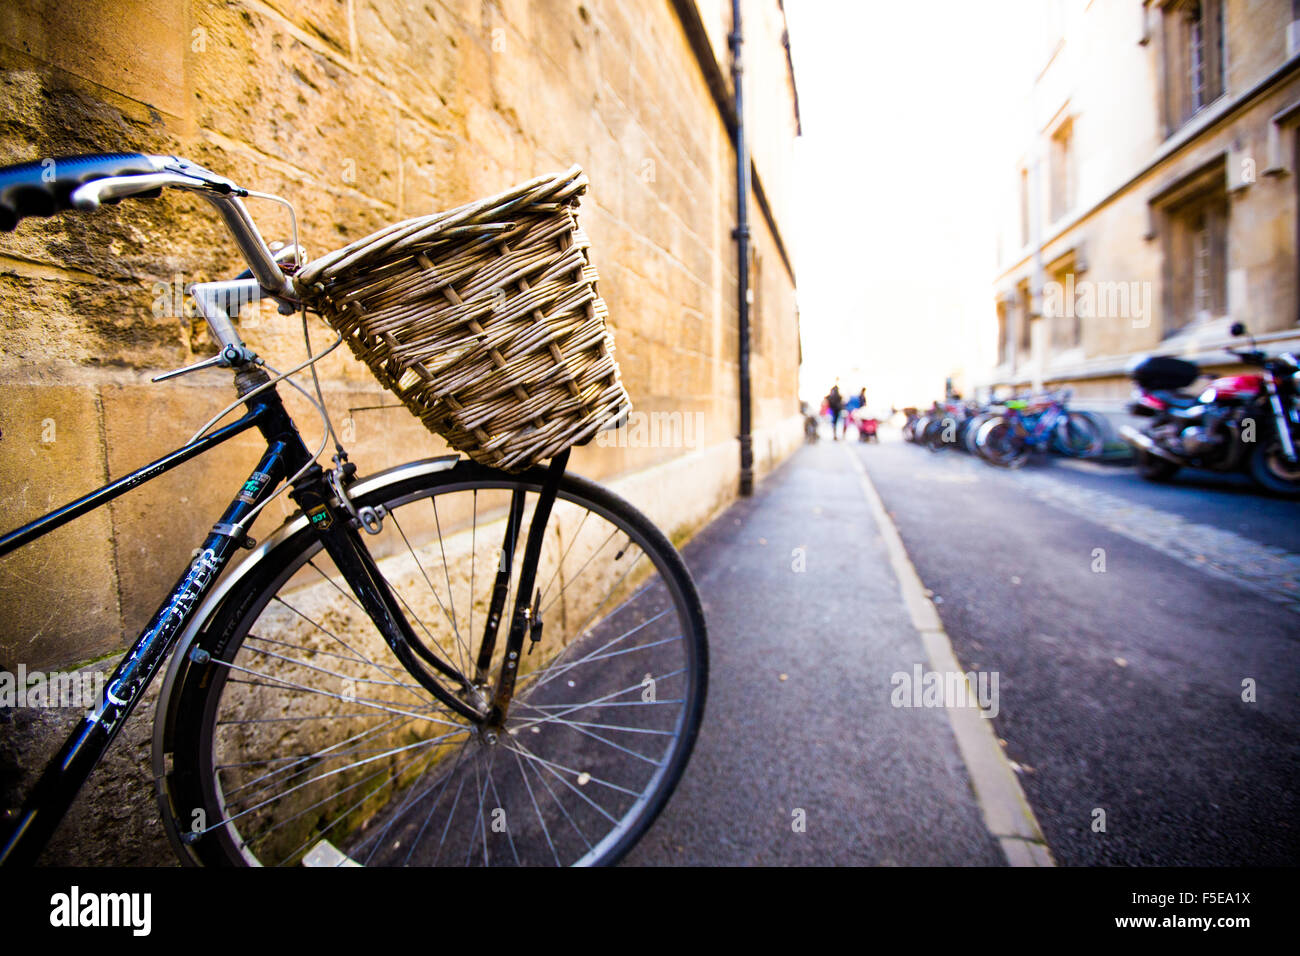 Bicycle, Oxford, Oxfordshire, England, United Kingdom, Europe - Stock Image